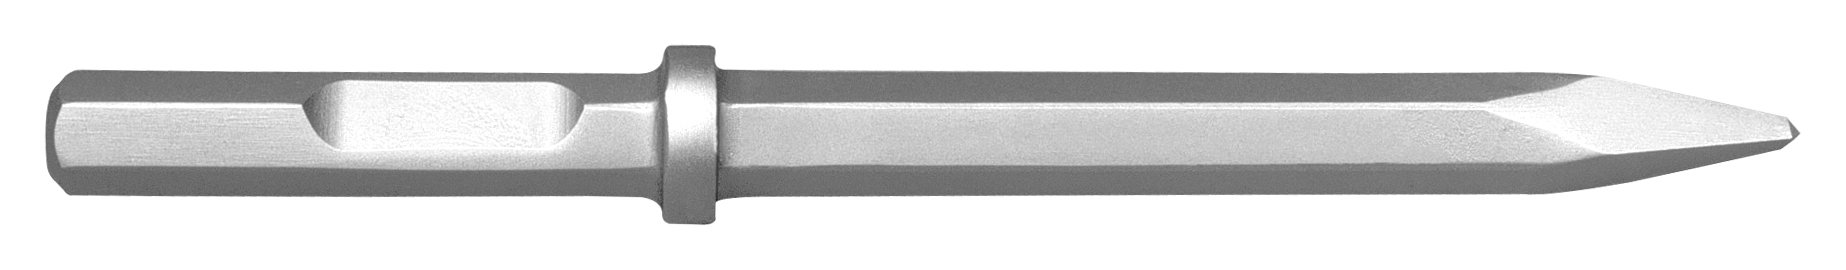 Champion Chisel, 1-1/8 by 6-Inch Hex Shank w/notch, 18-Inch Long Moil or Bull Point - Designed for 60lb & 90lb Pneumatic Hammers